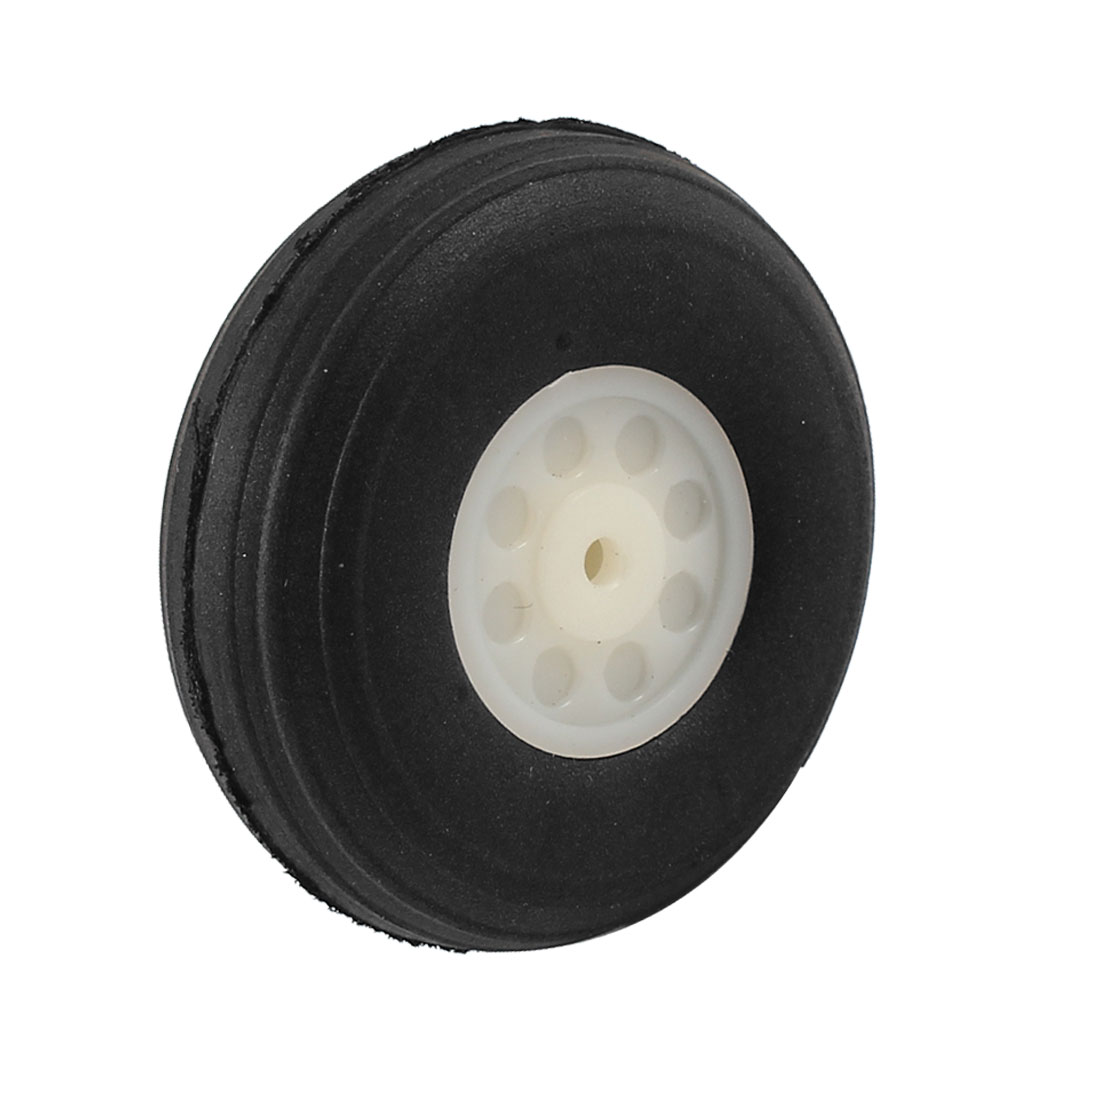 "1.5"" Dia RC Airplane DIY Assembly Spare Parts Rubber Tire Wheel"